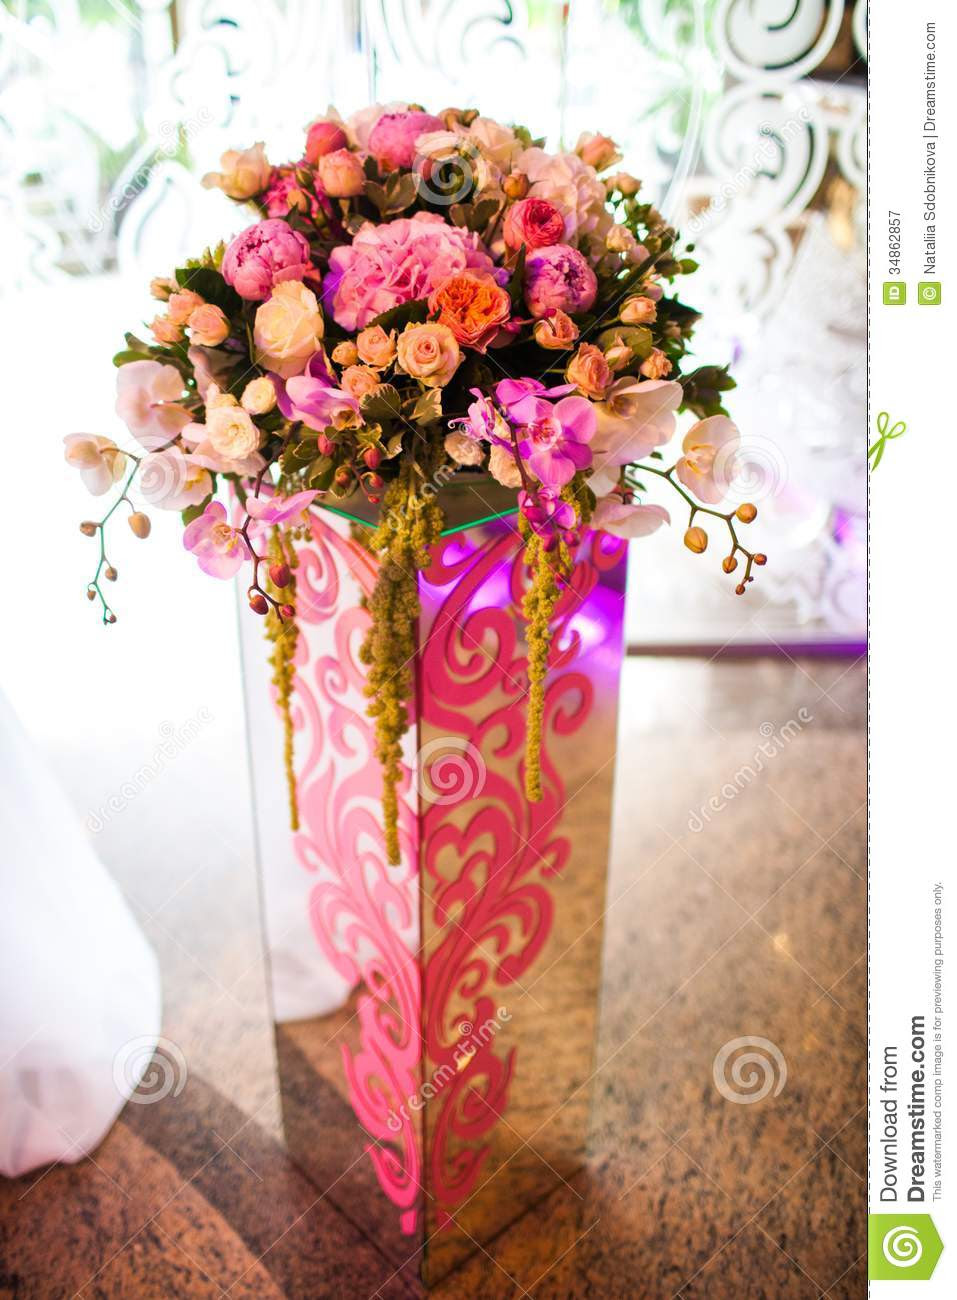 royalty free stock photography flowers vase as decoration banquet hall image